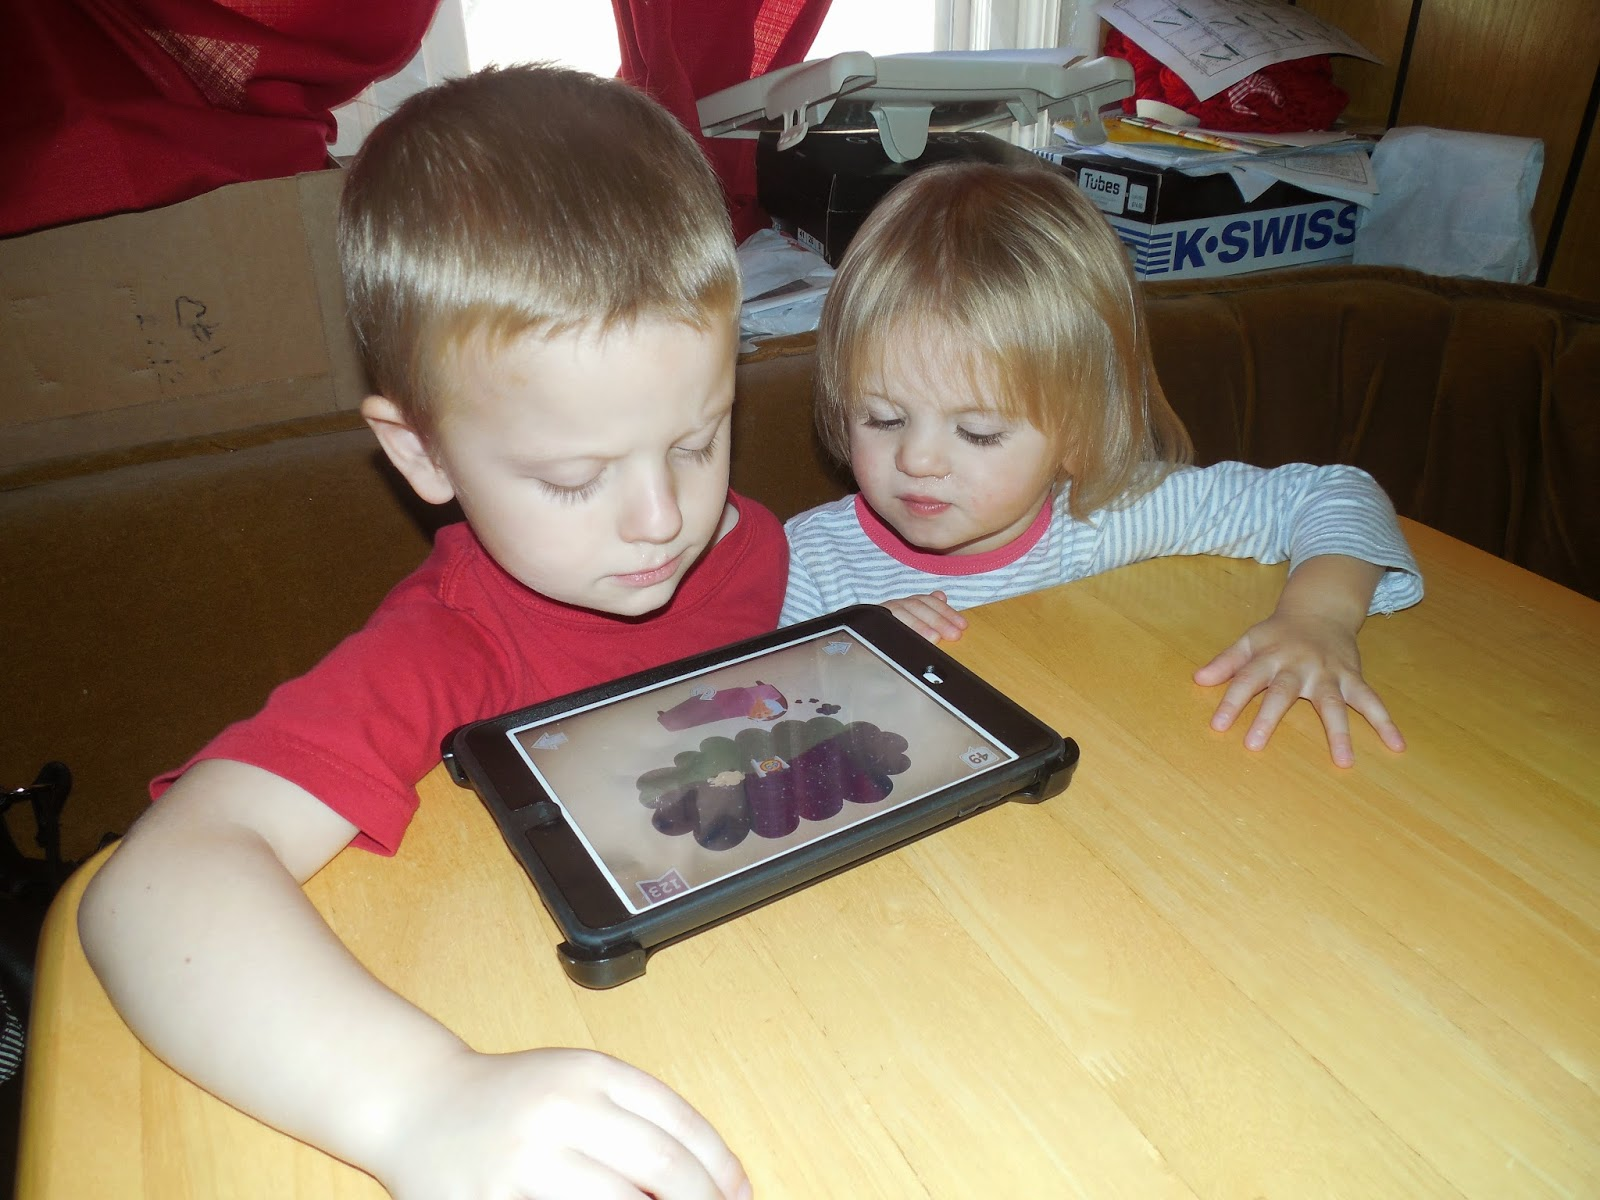 They Watch And Play The Ipad Together All The Time